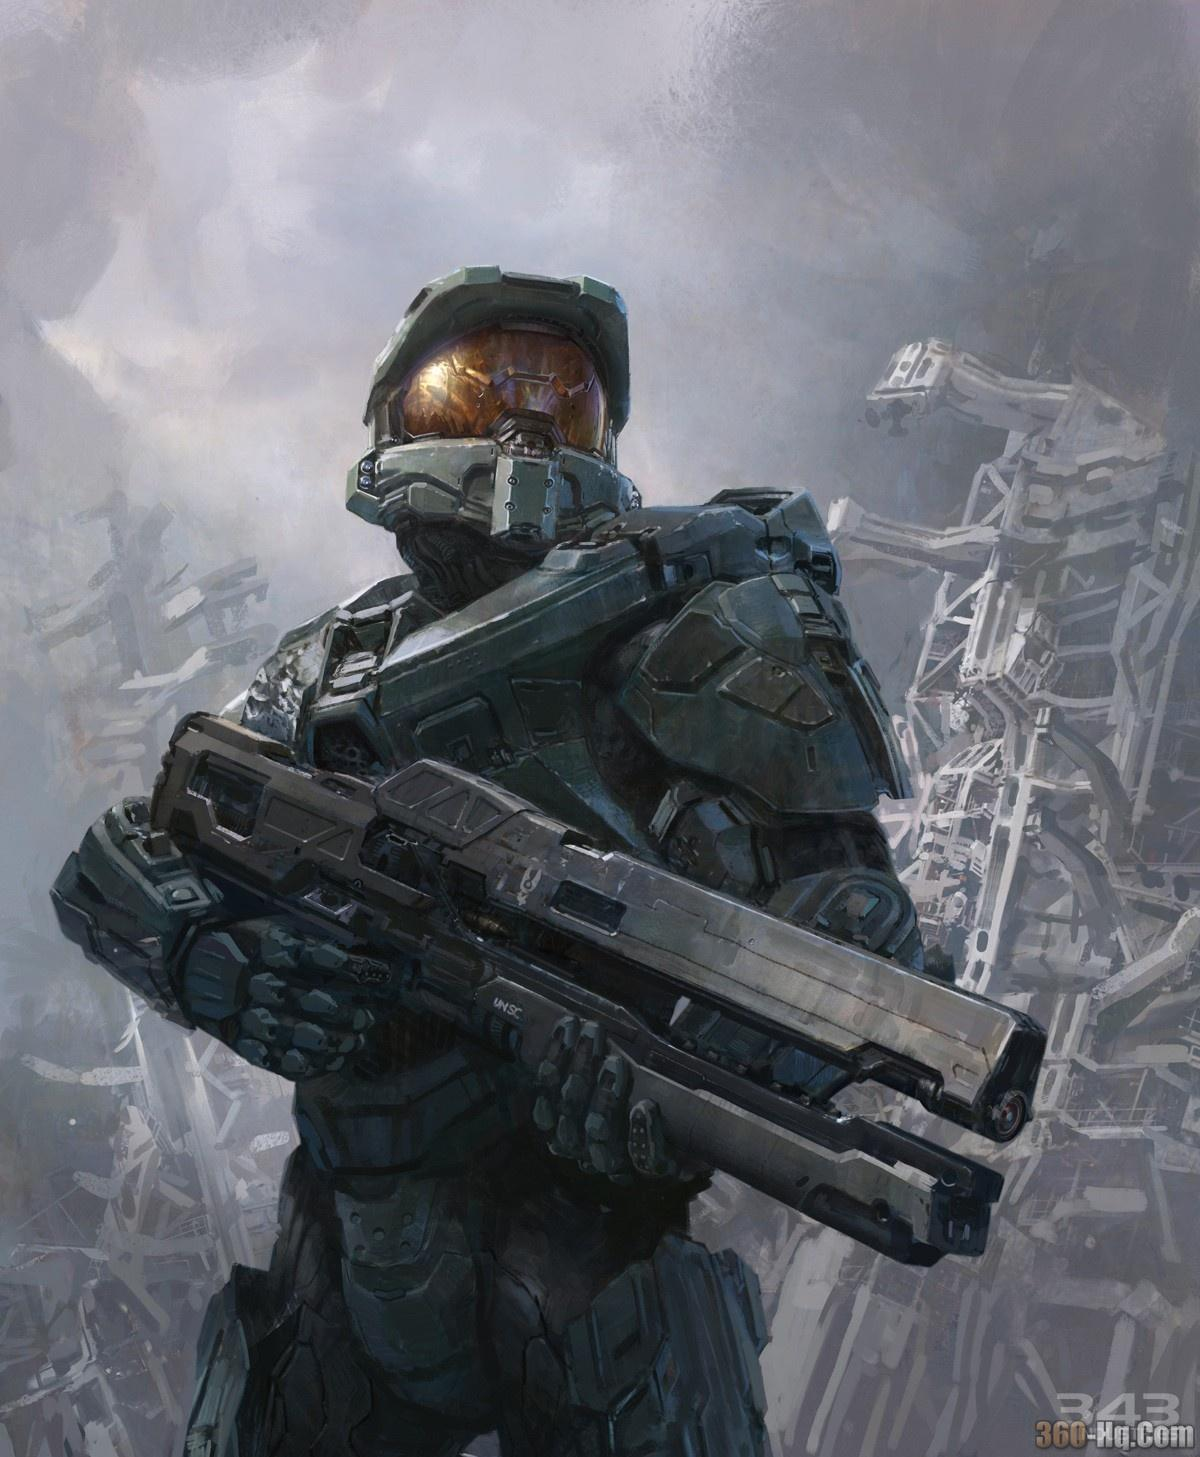 Halo 4 Screenshot 23372